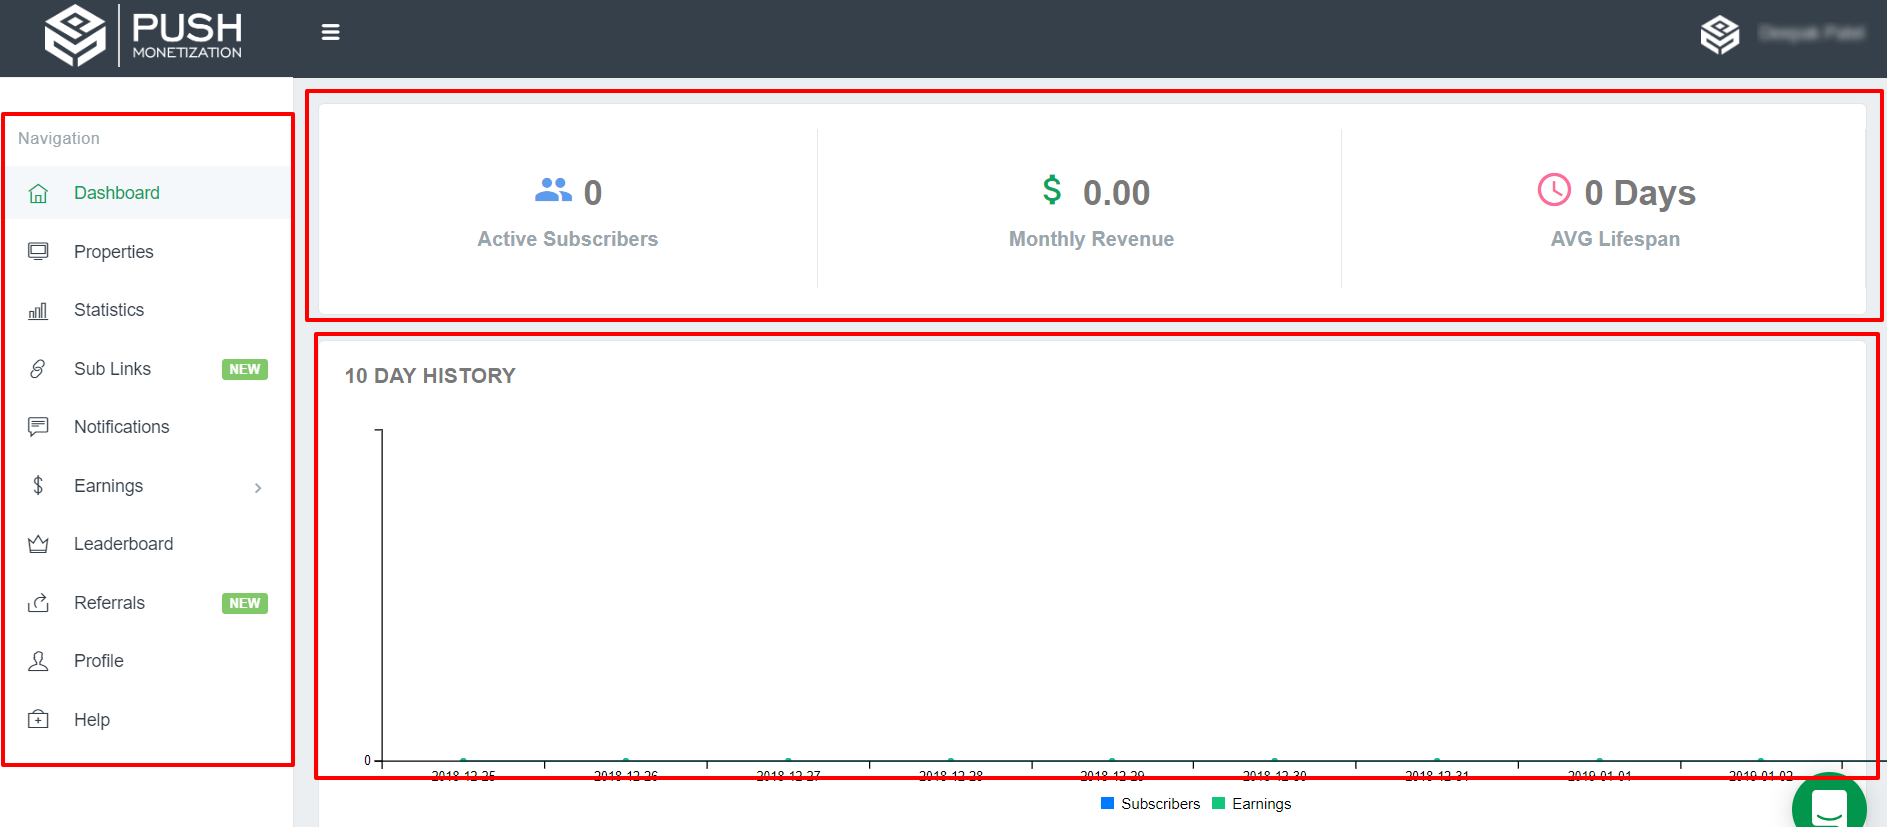 Push Monetization Review- Dashboard For Publishers